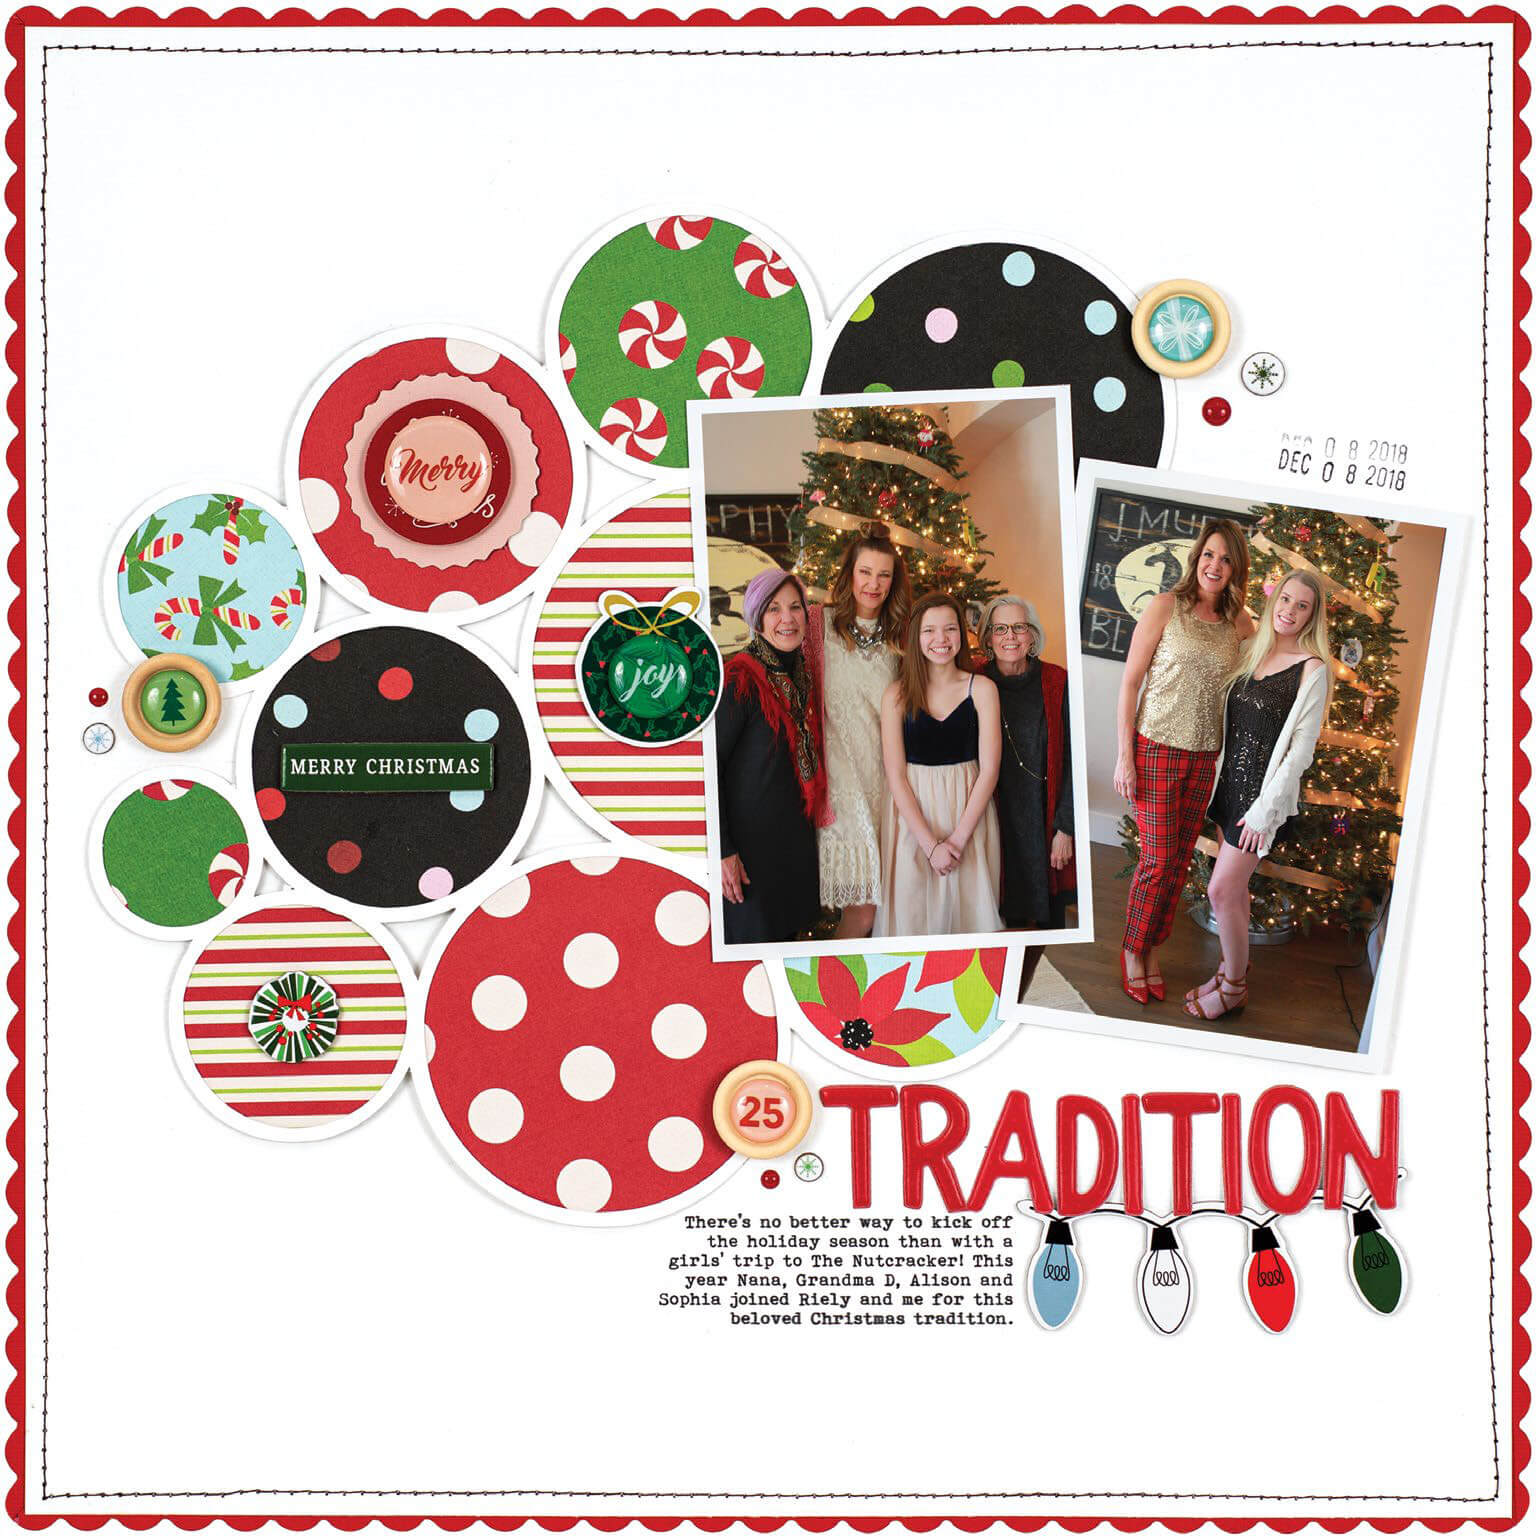 Scrapbook & Cards Today - Winter 2019 - Tradition layout by Lisa Dickinson